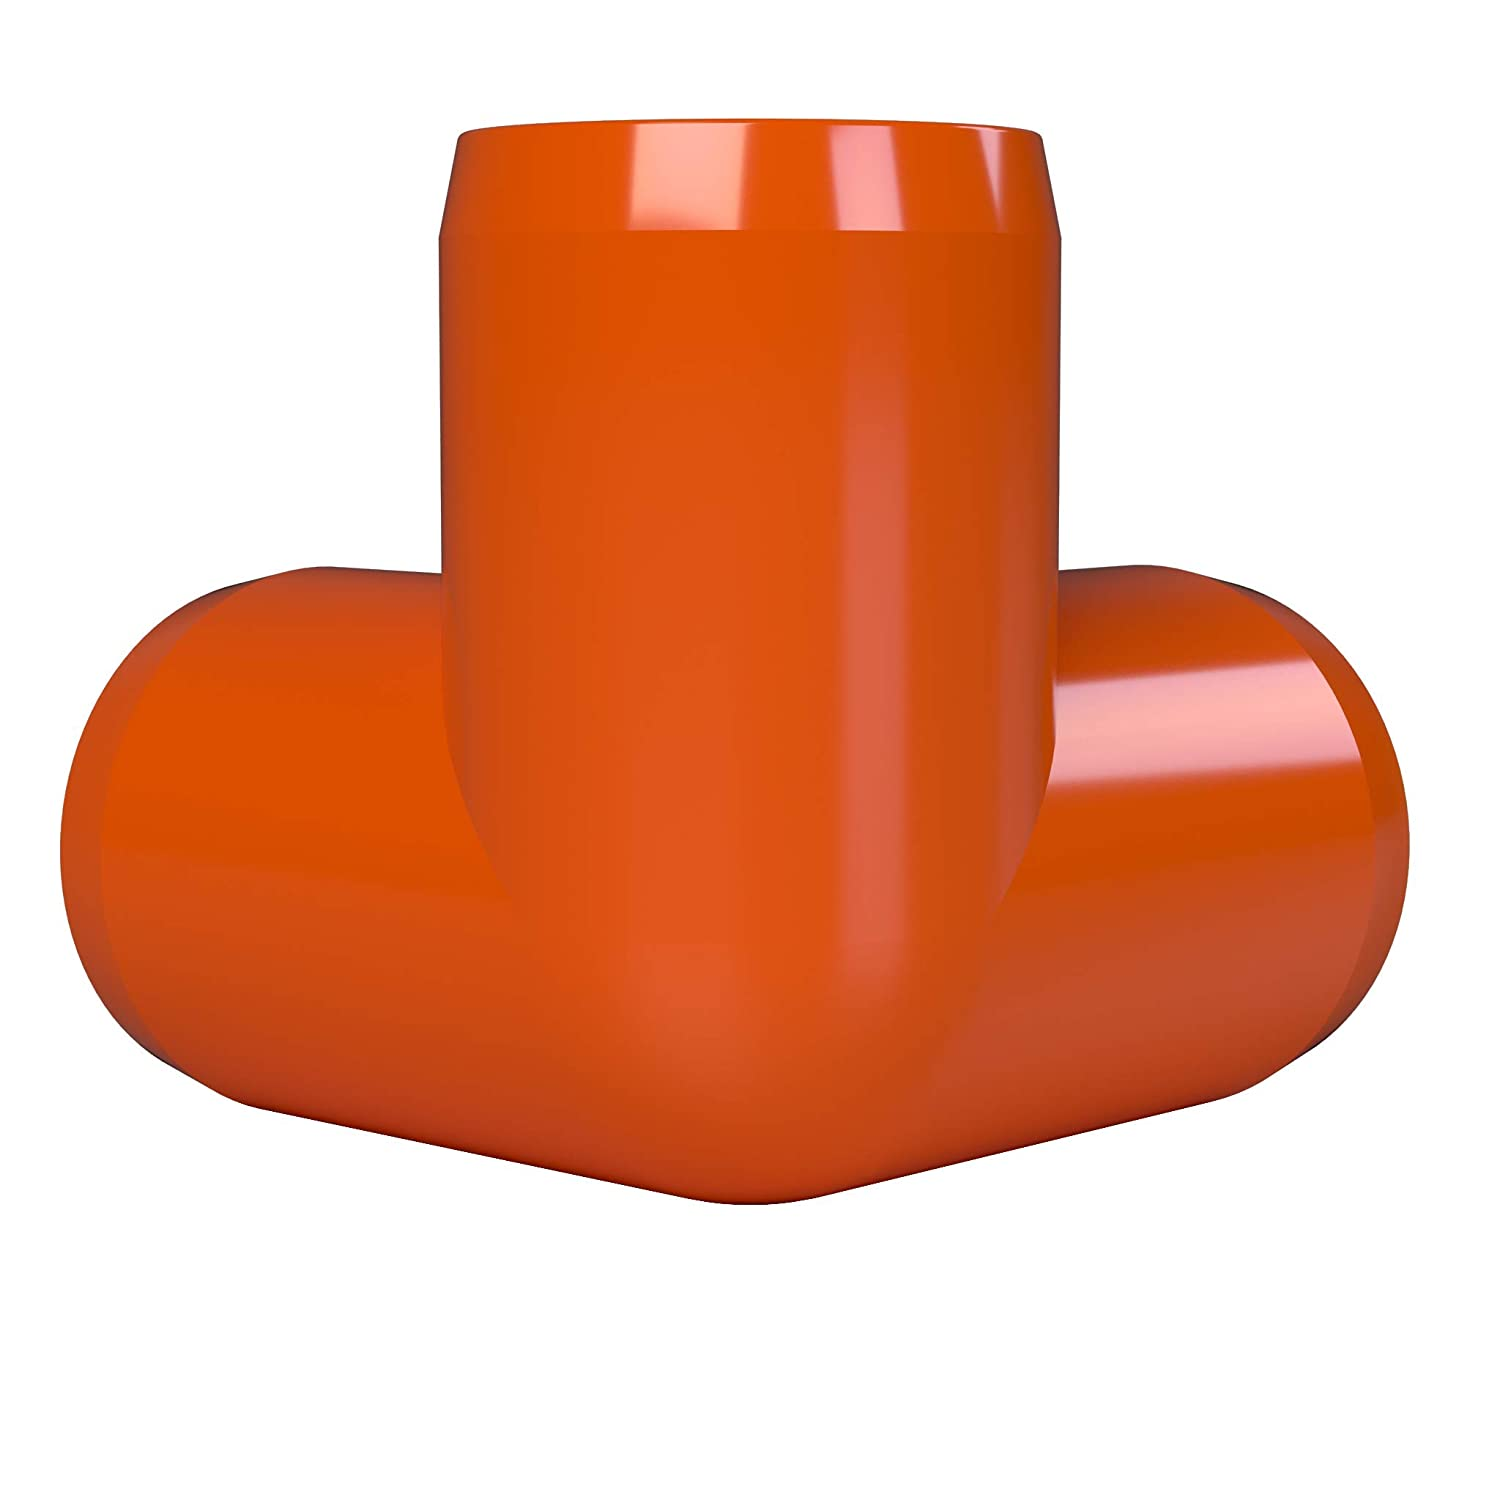 FORMUFIT F1143WE-OR-4 3-Way Elbow PVC Fitting Orange Furniture Grade 1-1//4 Size Pack of 4